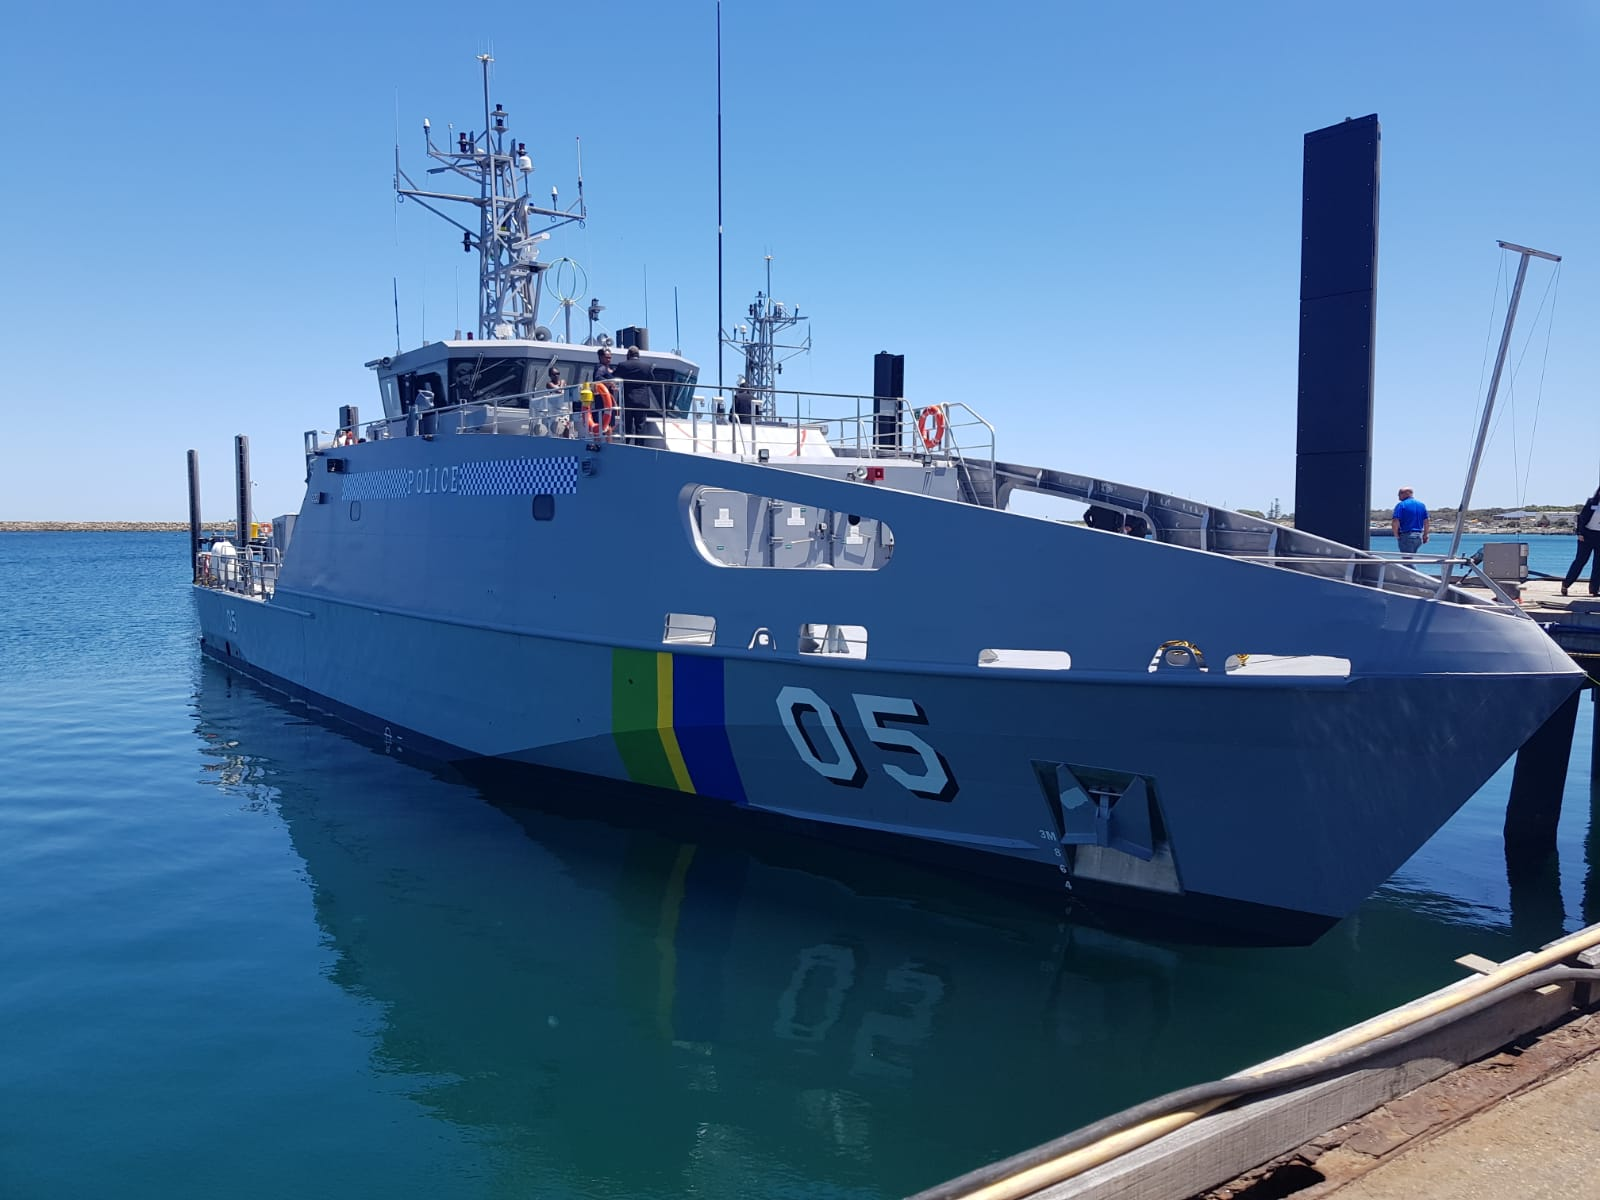 Boats to boost security in Solomons: Sogavare